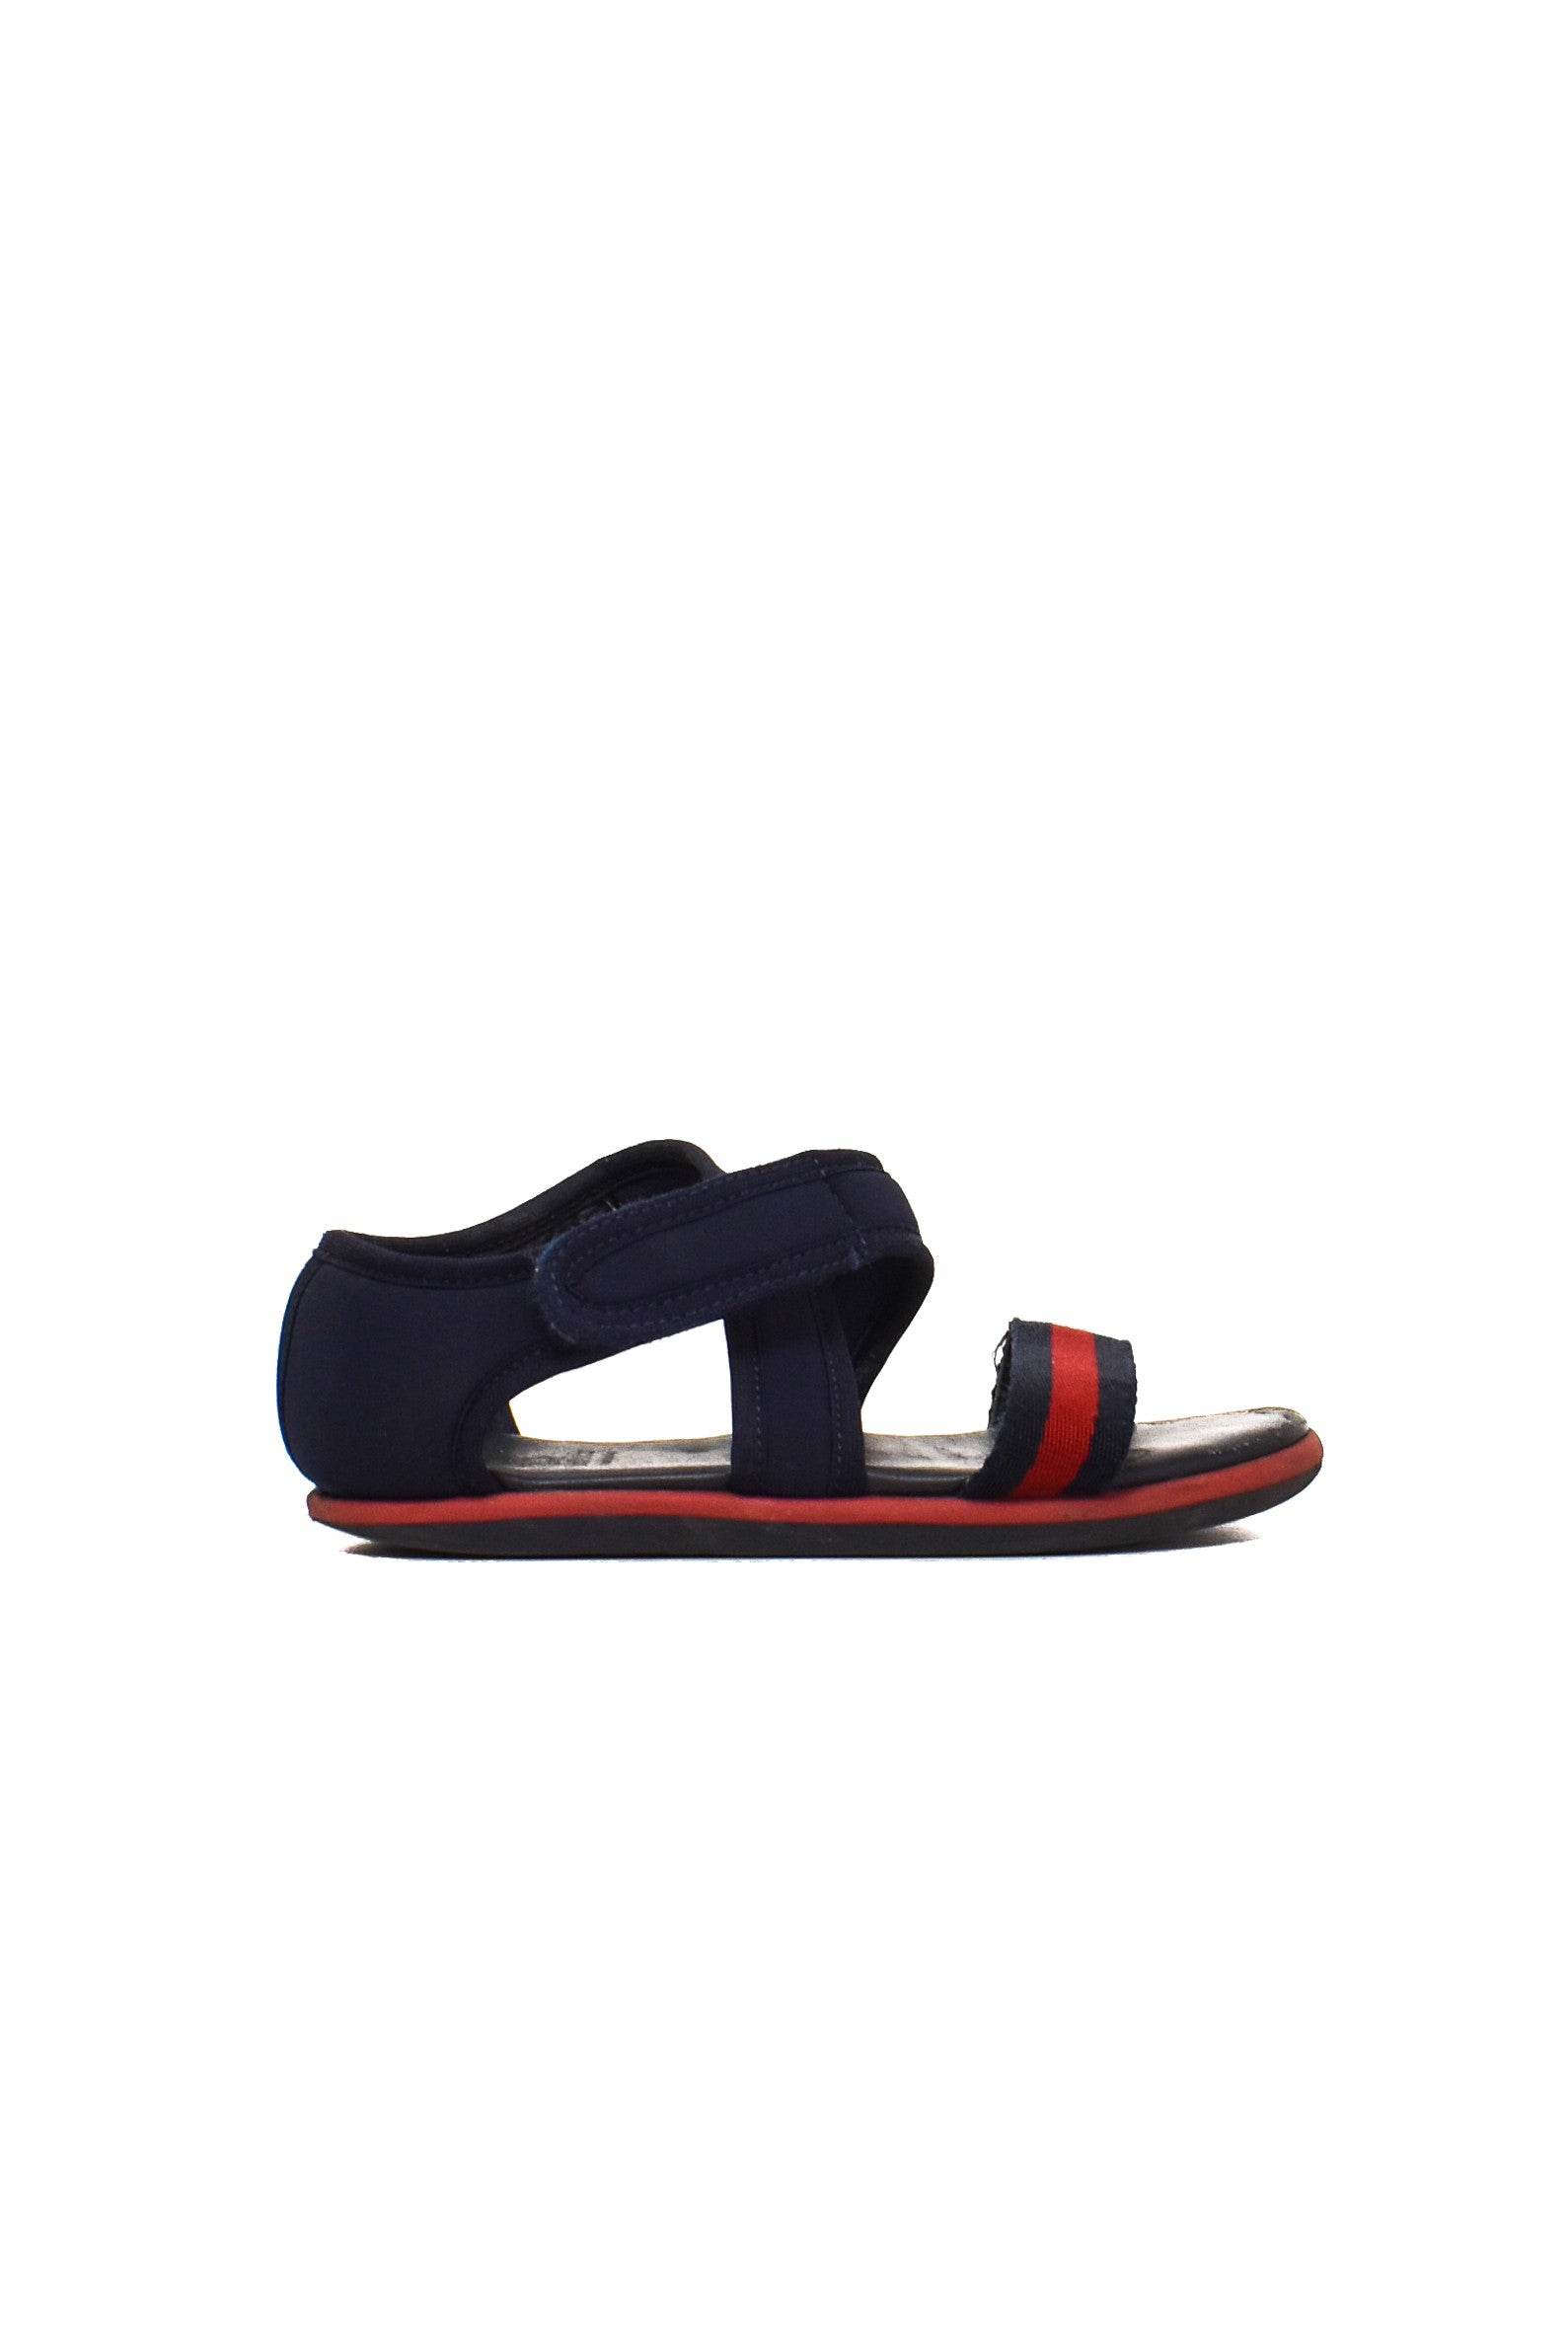 f3cb3a2536937 10004492 Gucci Kids~Sandals 2T at Retykle